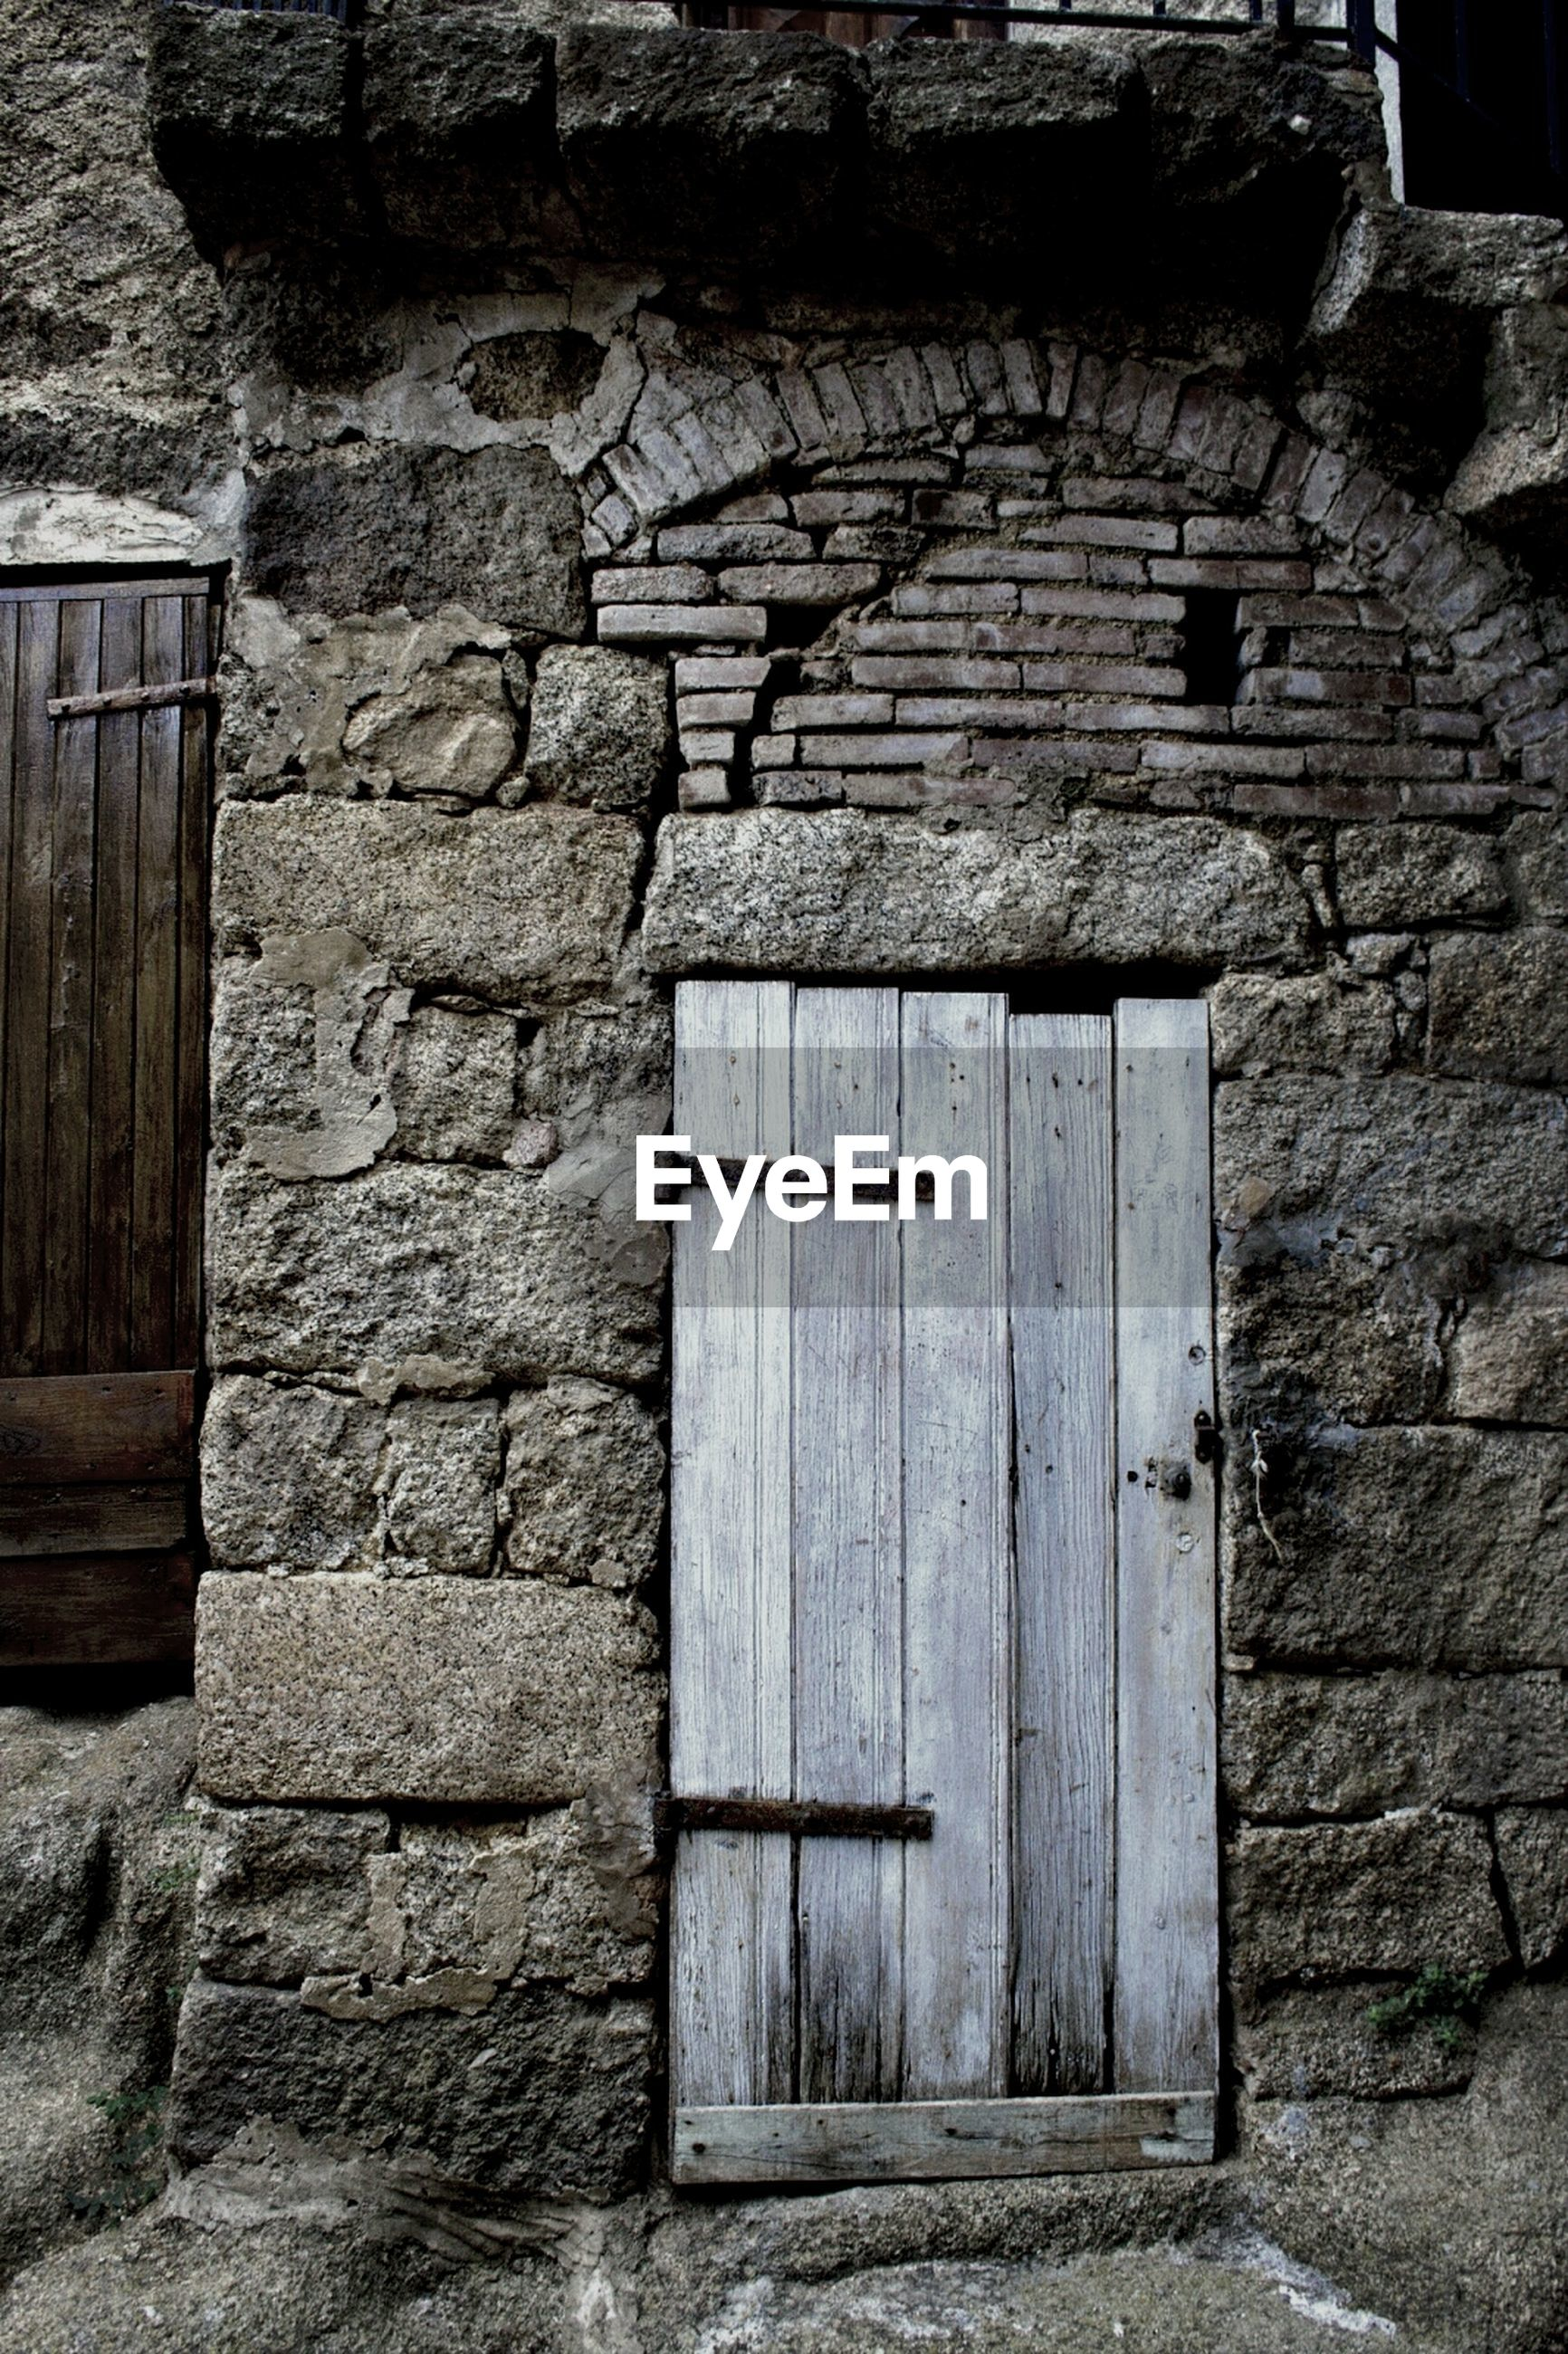 architecture, built structure, building exterior, brick wall, stone wall, old, door, wall - building feature, house, closed, weathered, entrance, window, abandoned, wood - material, wall, protection, damaged, outdoors, safety